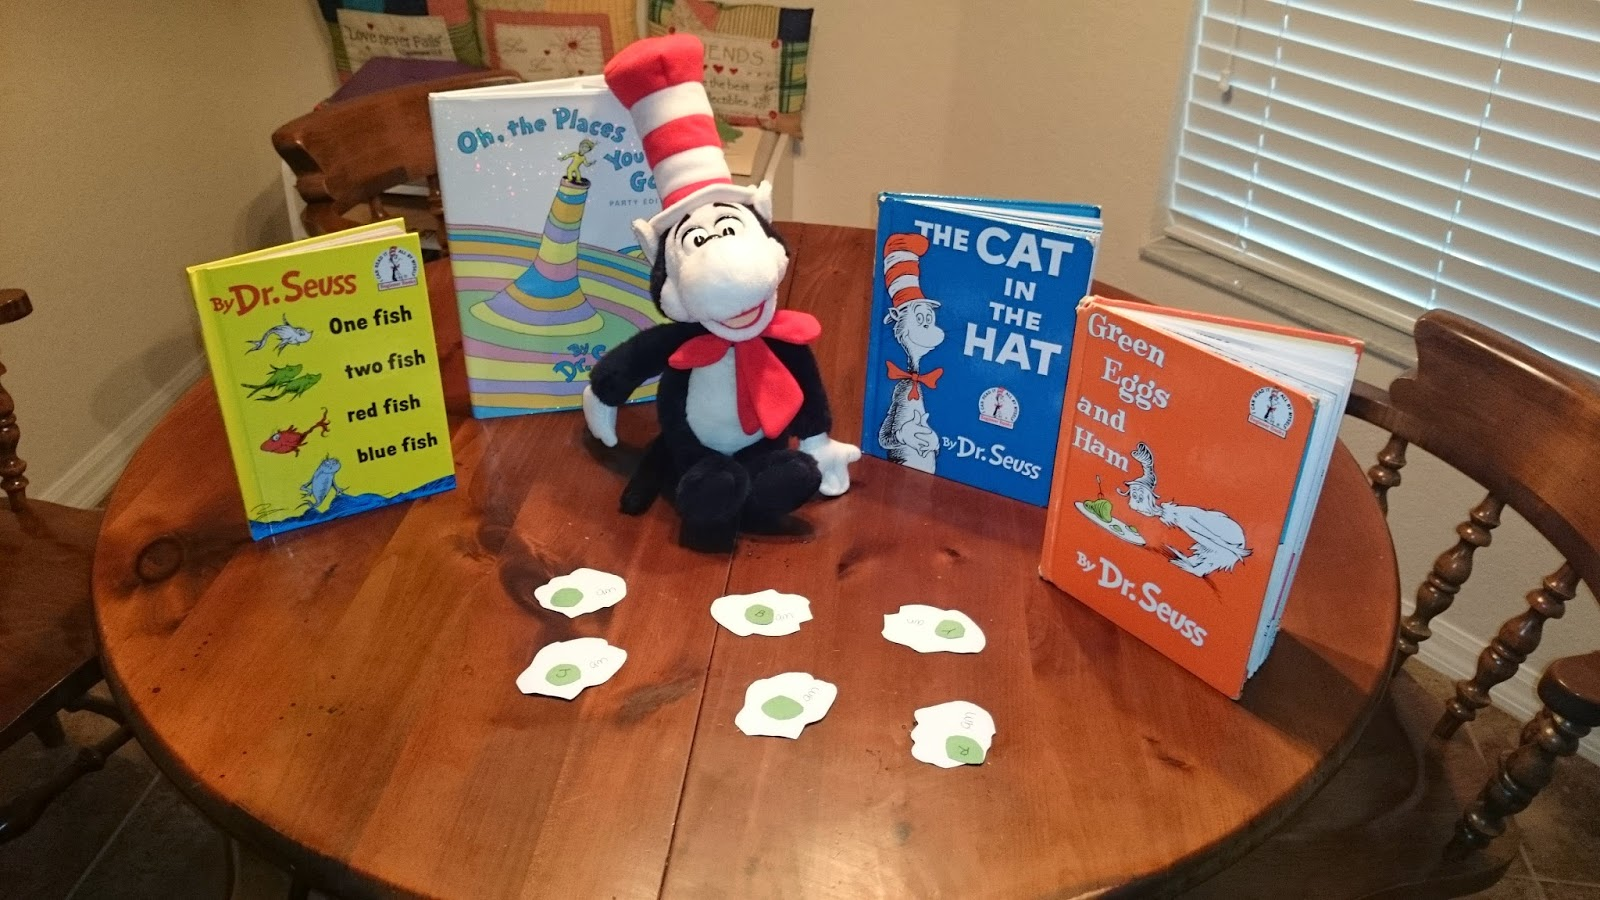 Happy Birthday, Dr. Seuss and World Read Aloud Day